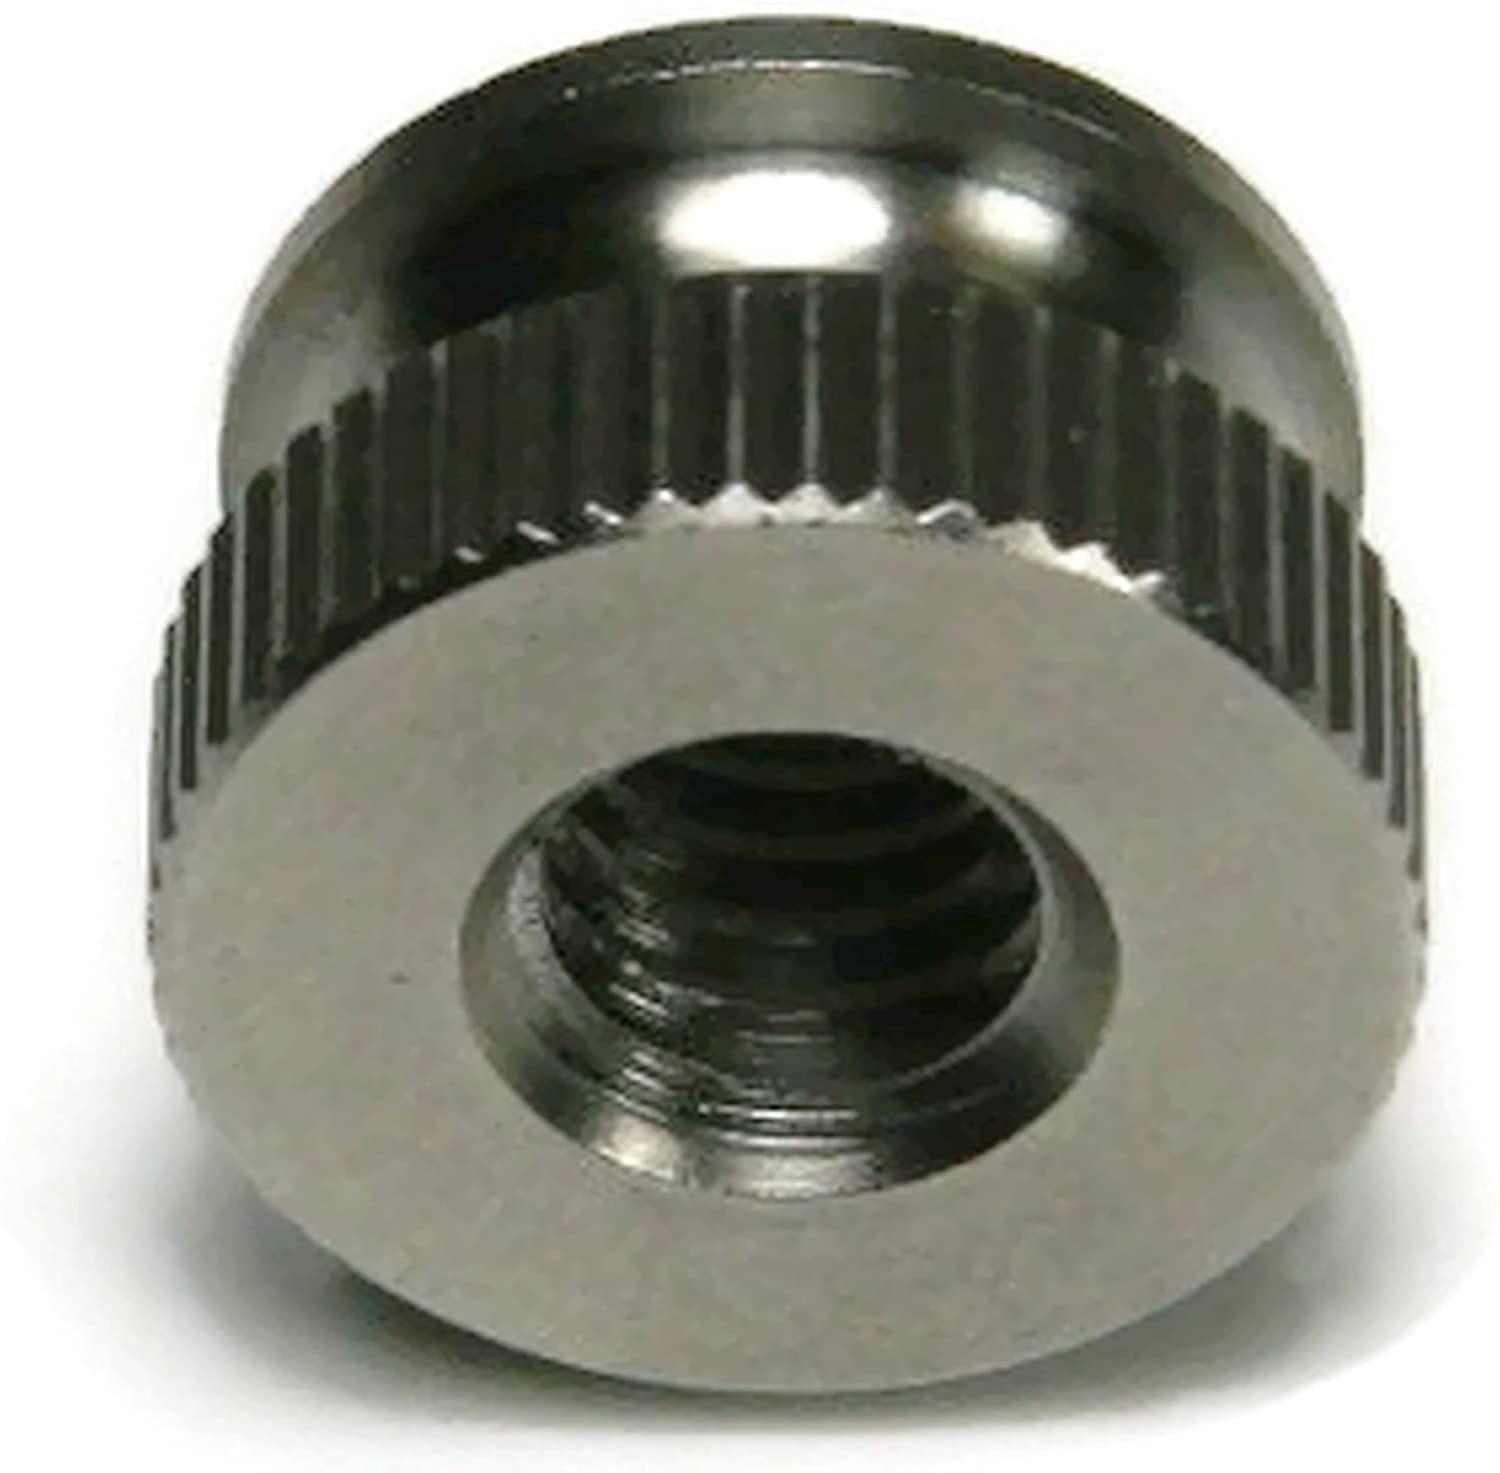 - Qty-10 1//2 Dia x 21//64 THK #10-24 Knurled Head Thumb Nut 18-8 Stainless Steel Nuts USA Made